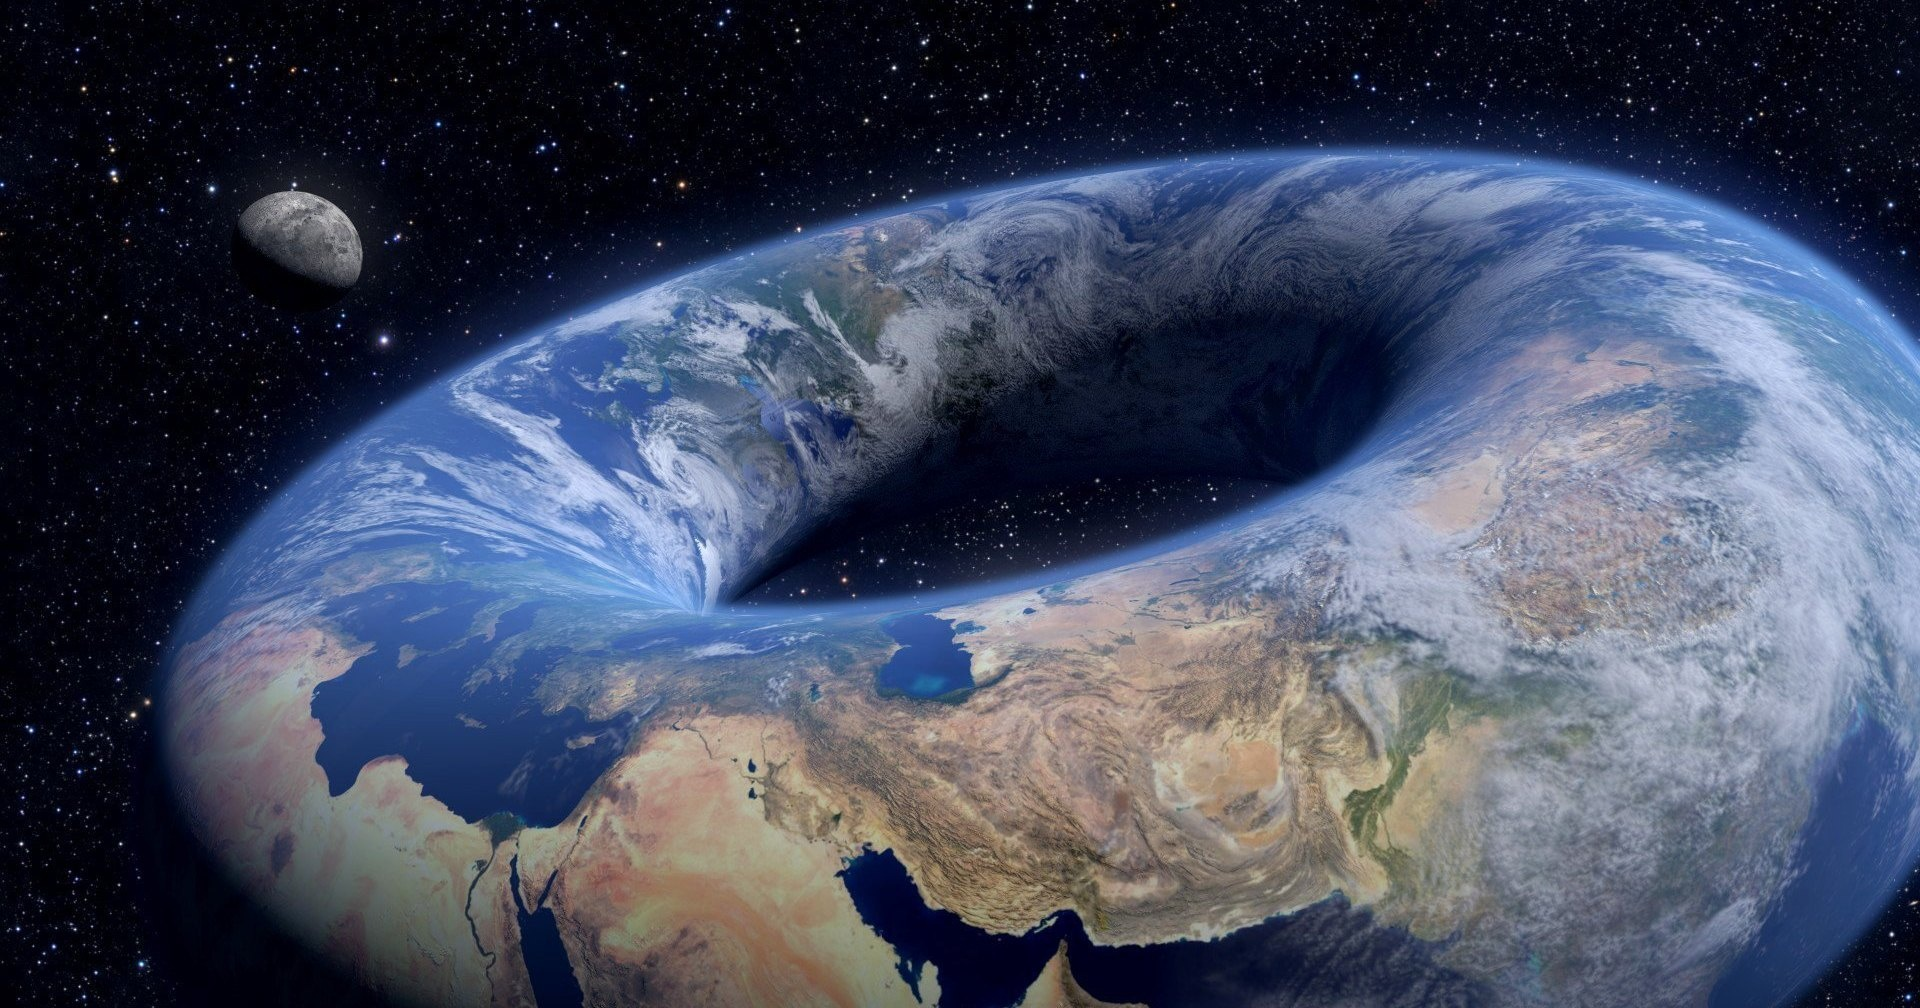 apparently some people believe the earth is shaped like a donut vice